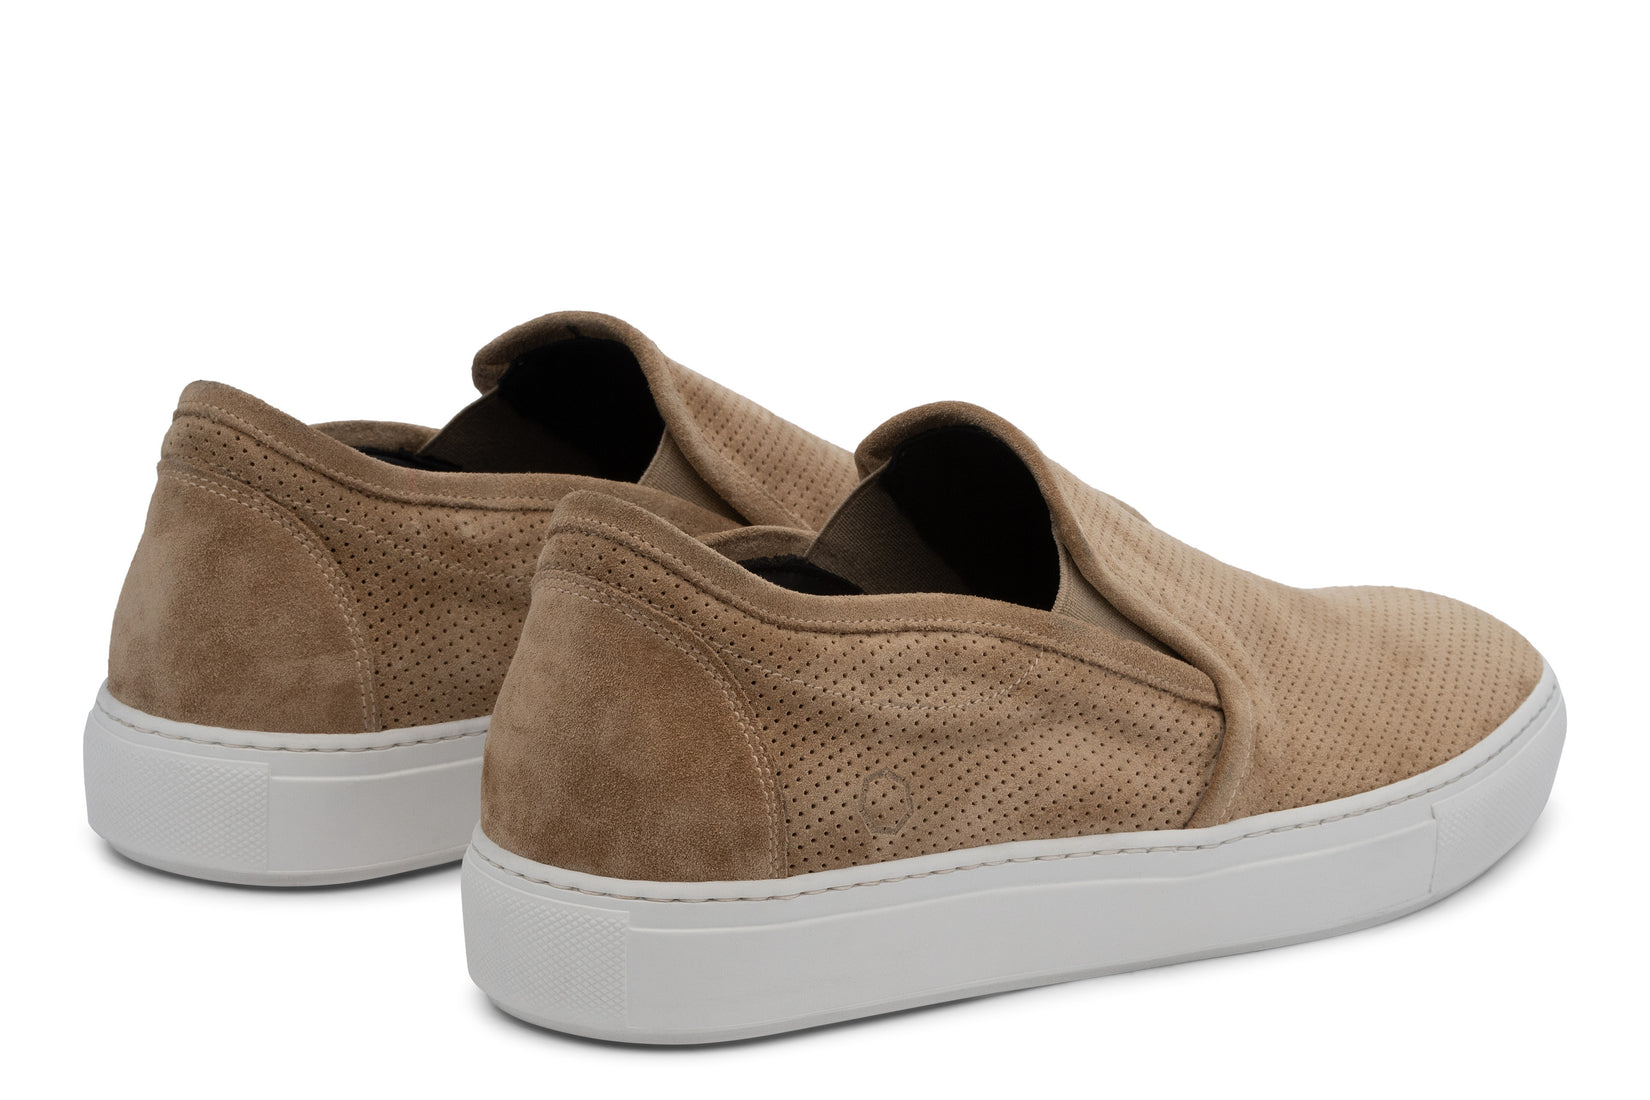 Tuesday Slip-On Sneaker in Beige (FINAL SALE)